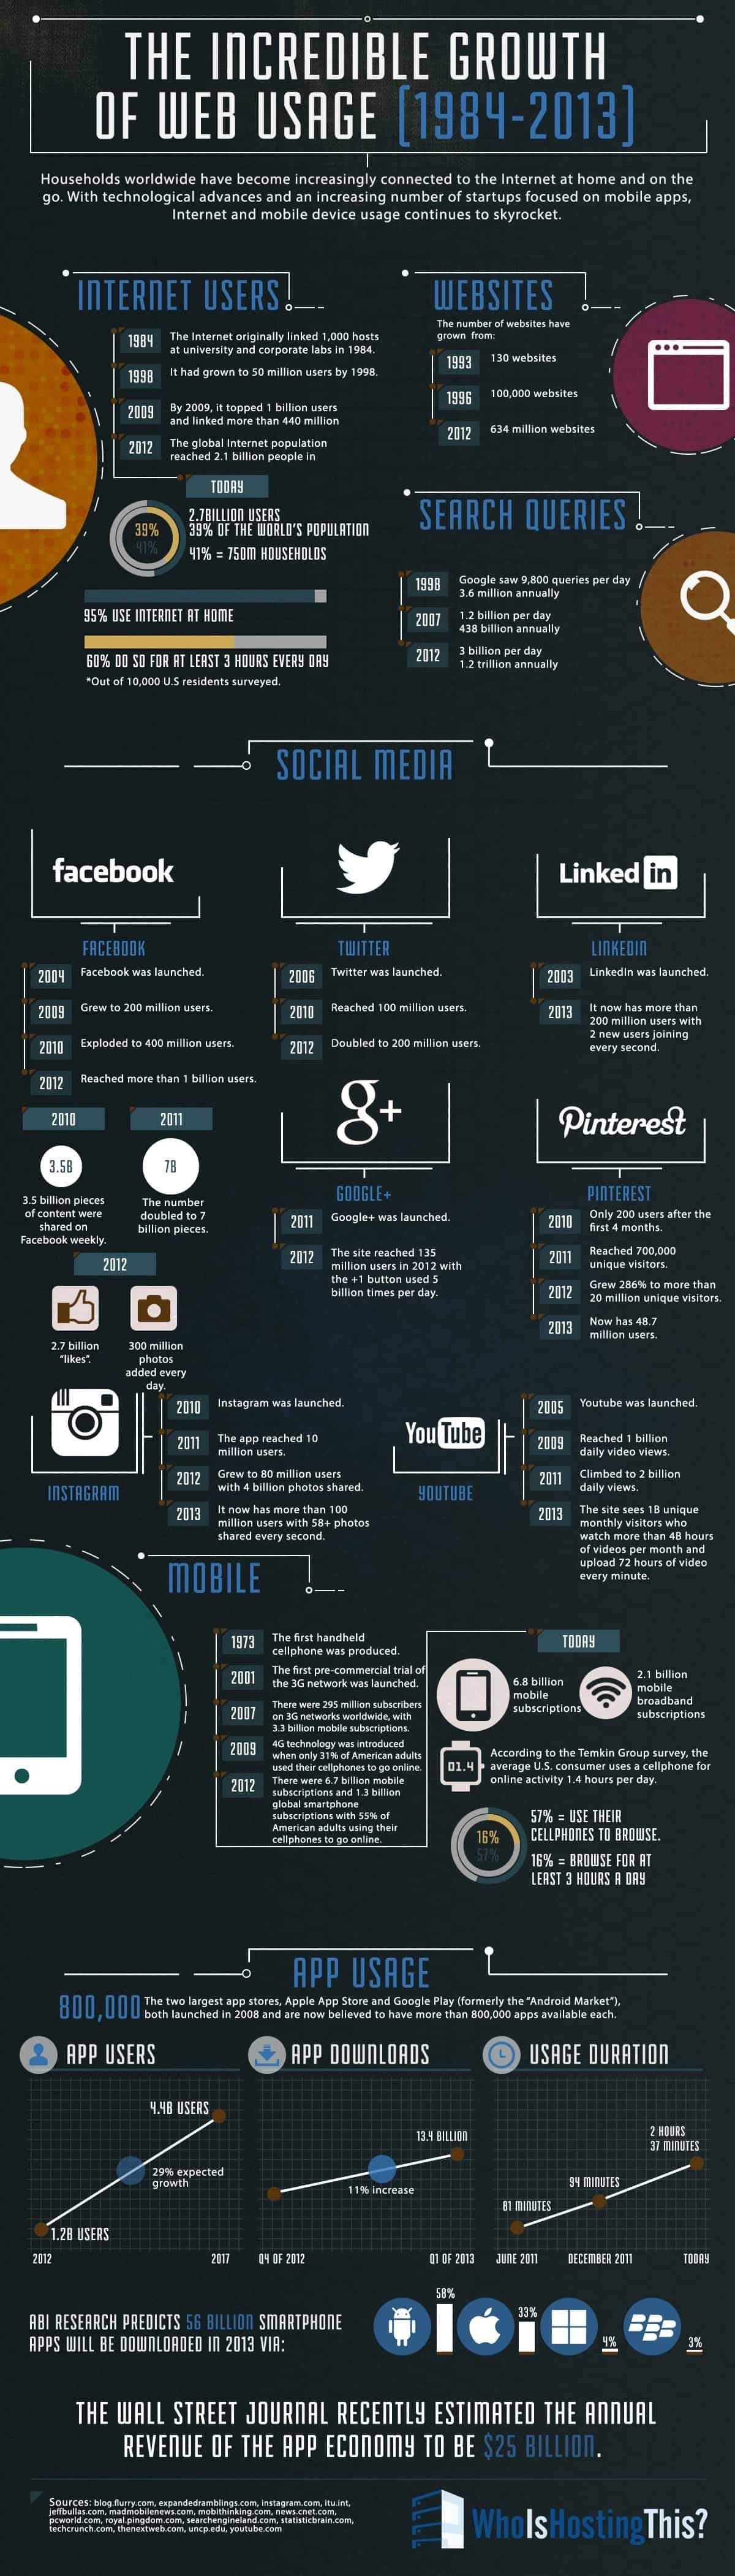 The Growth Of Internet From 1984 To 2013 #Infographic